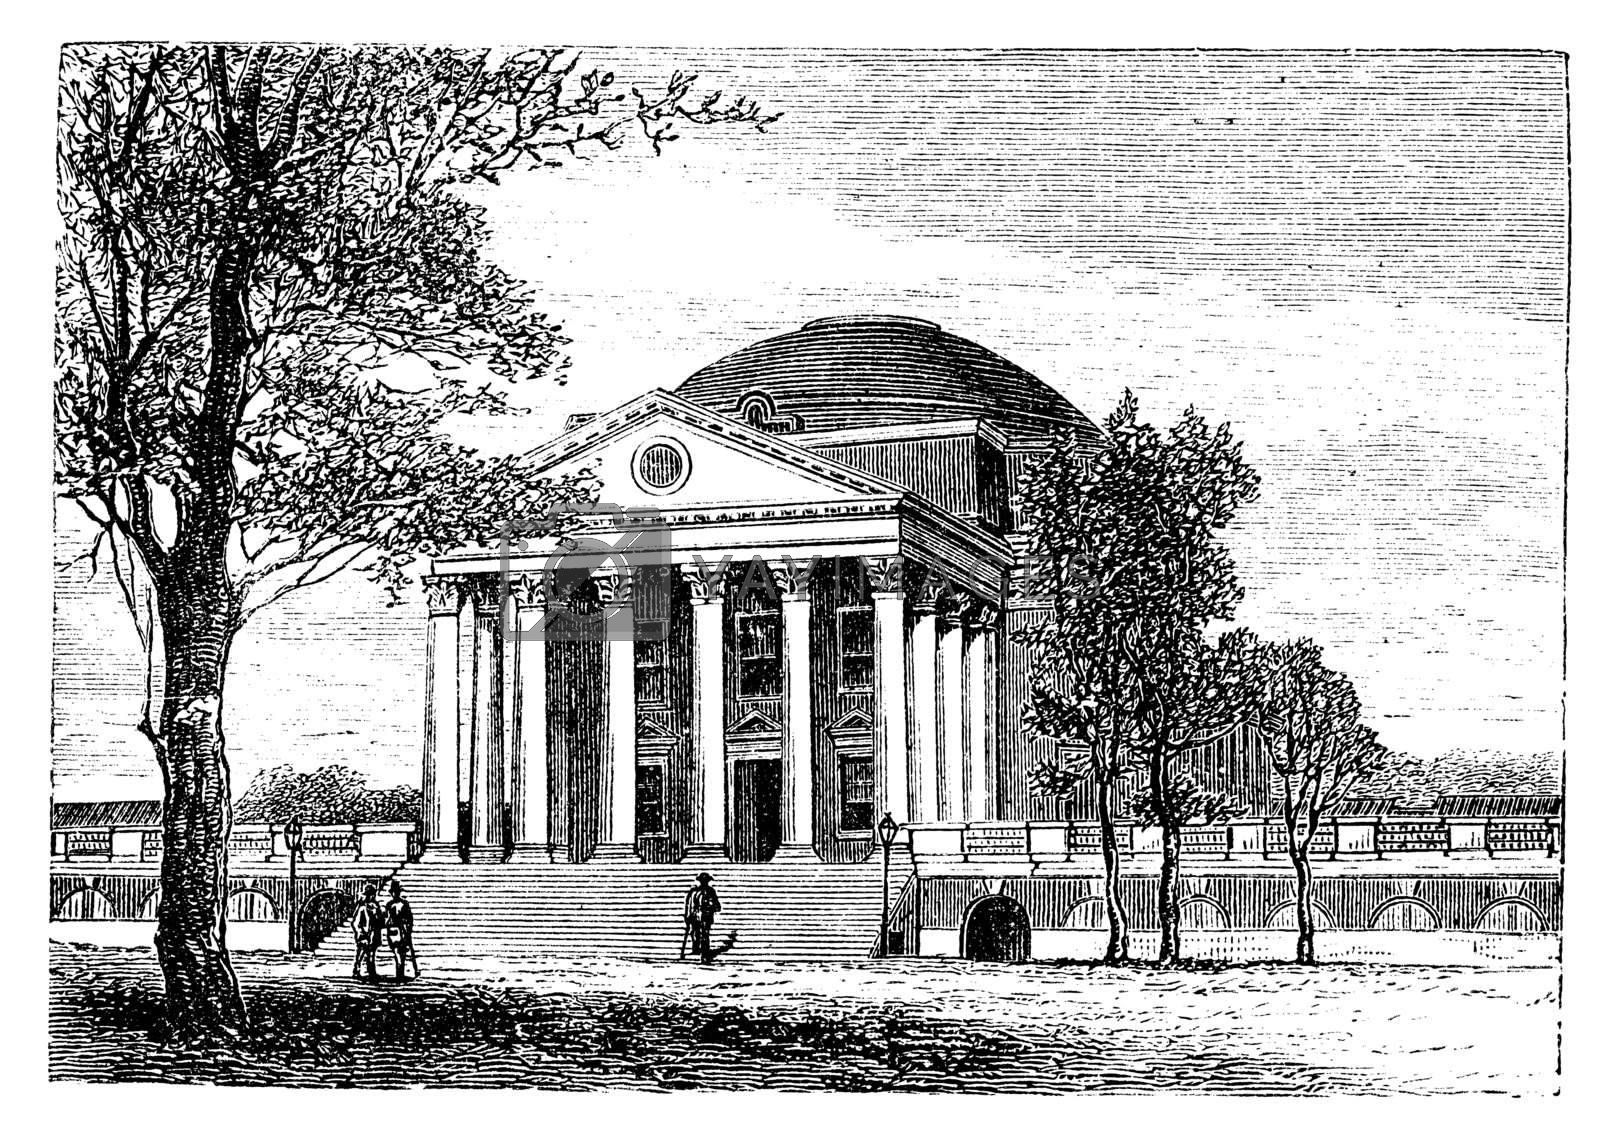 University of Virginia, in Charlottesville, Virginia, USA, showing the Rotunda building, vintage engraved illustration. Trousset encyclopedia (1886 - 1891).